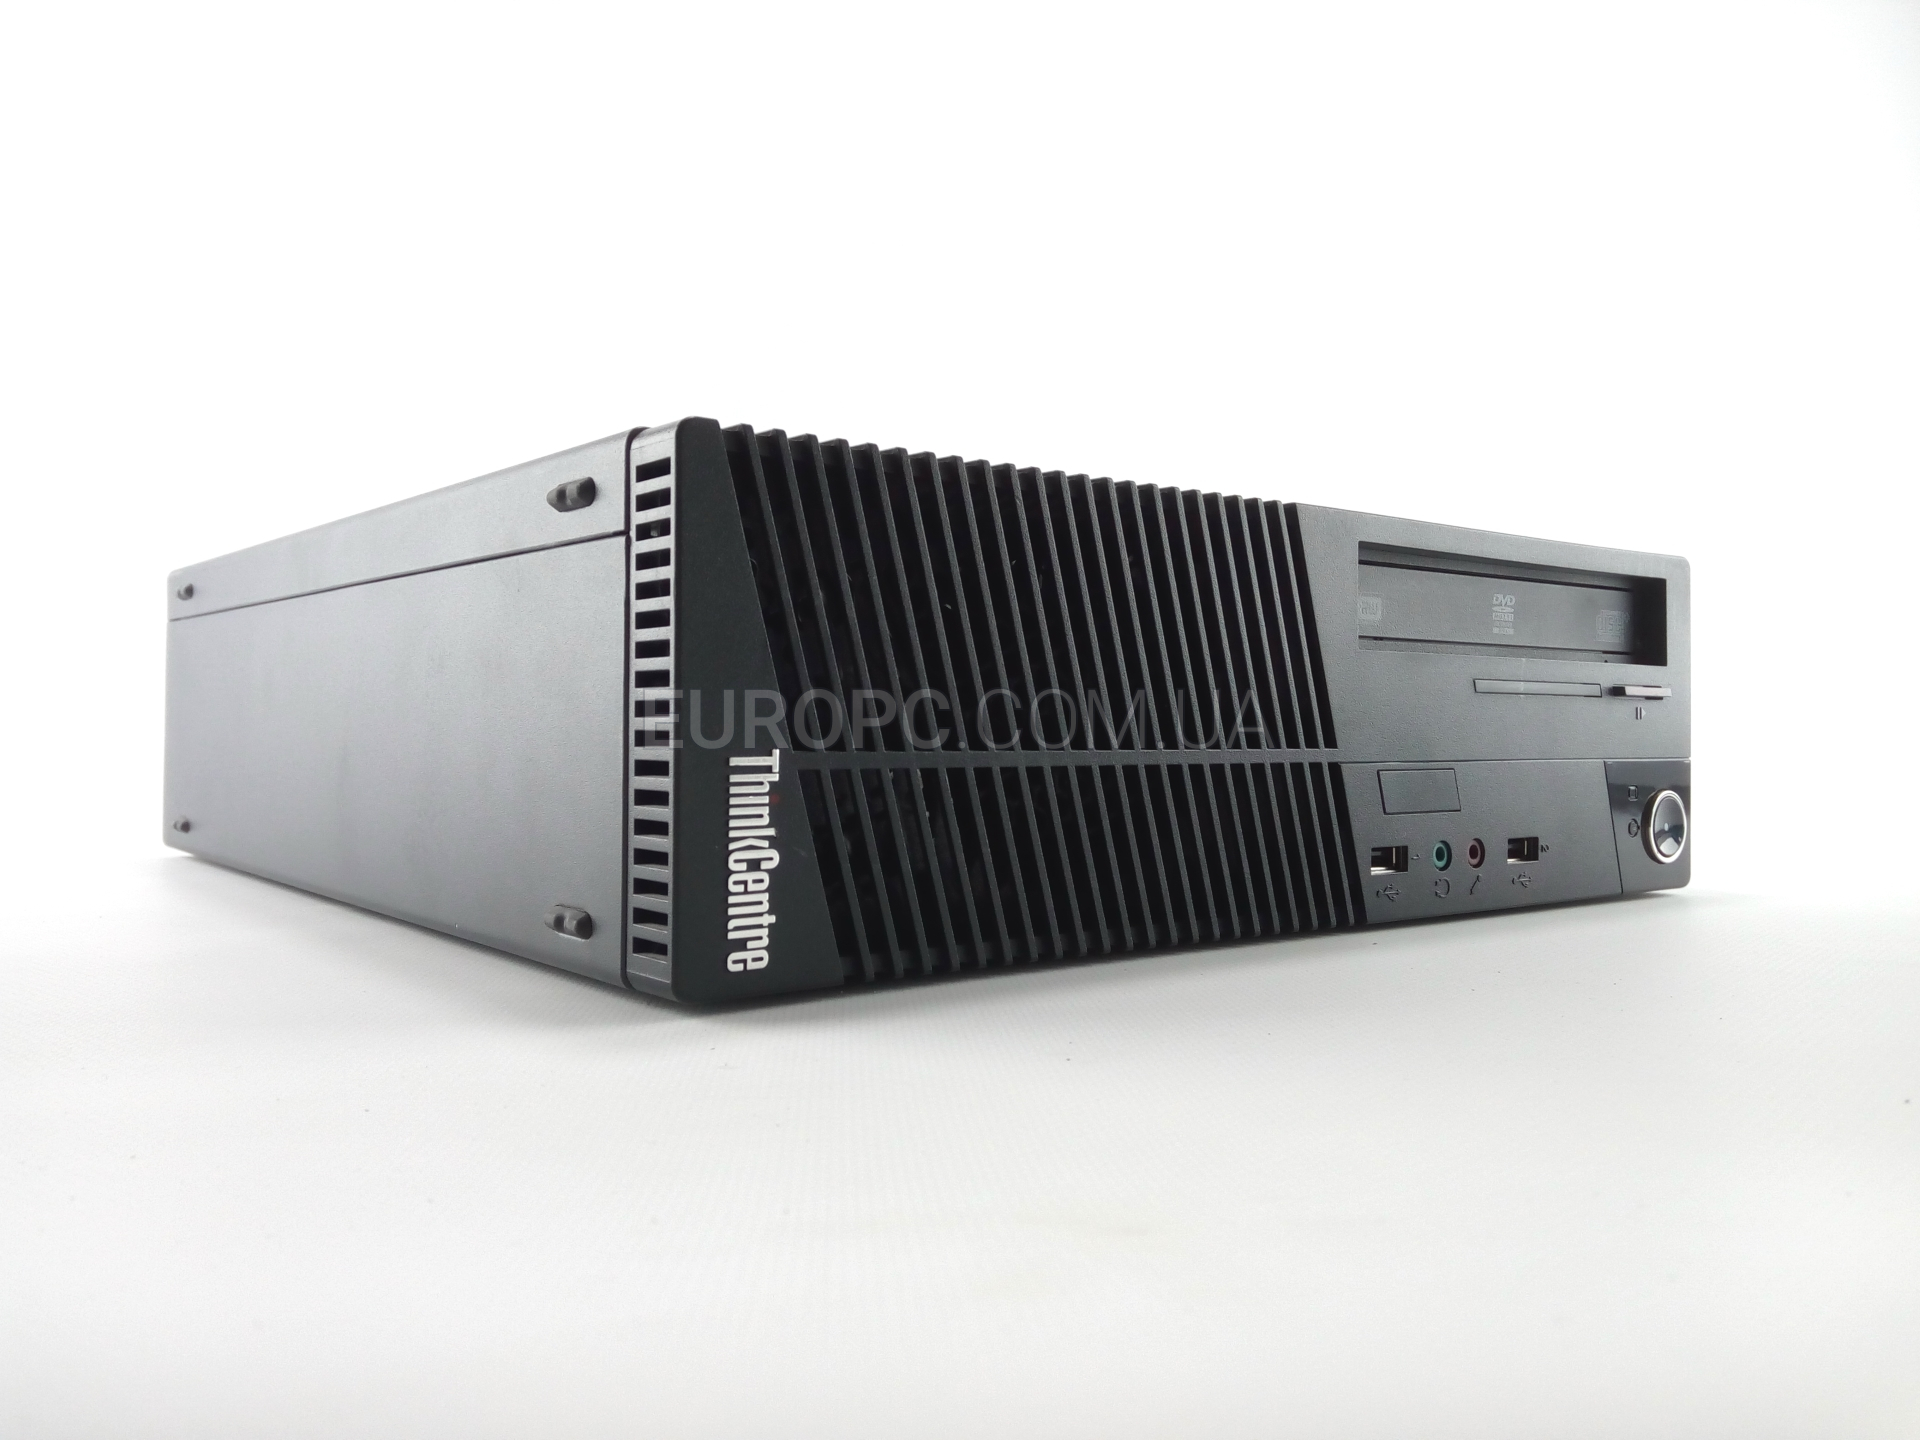 Lenovo ThinkCentre M70 Intel® Core™ 2 Duo E8400 фото - EuroPC